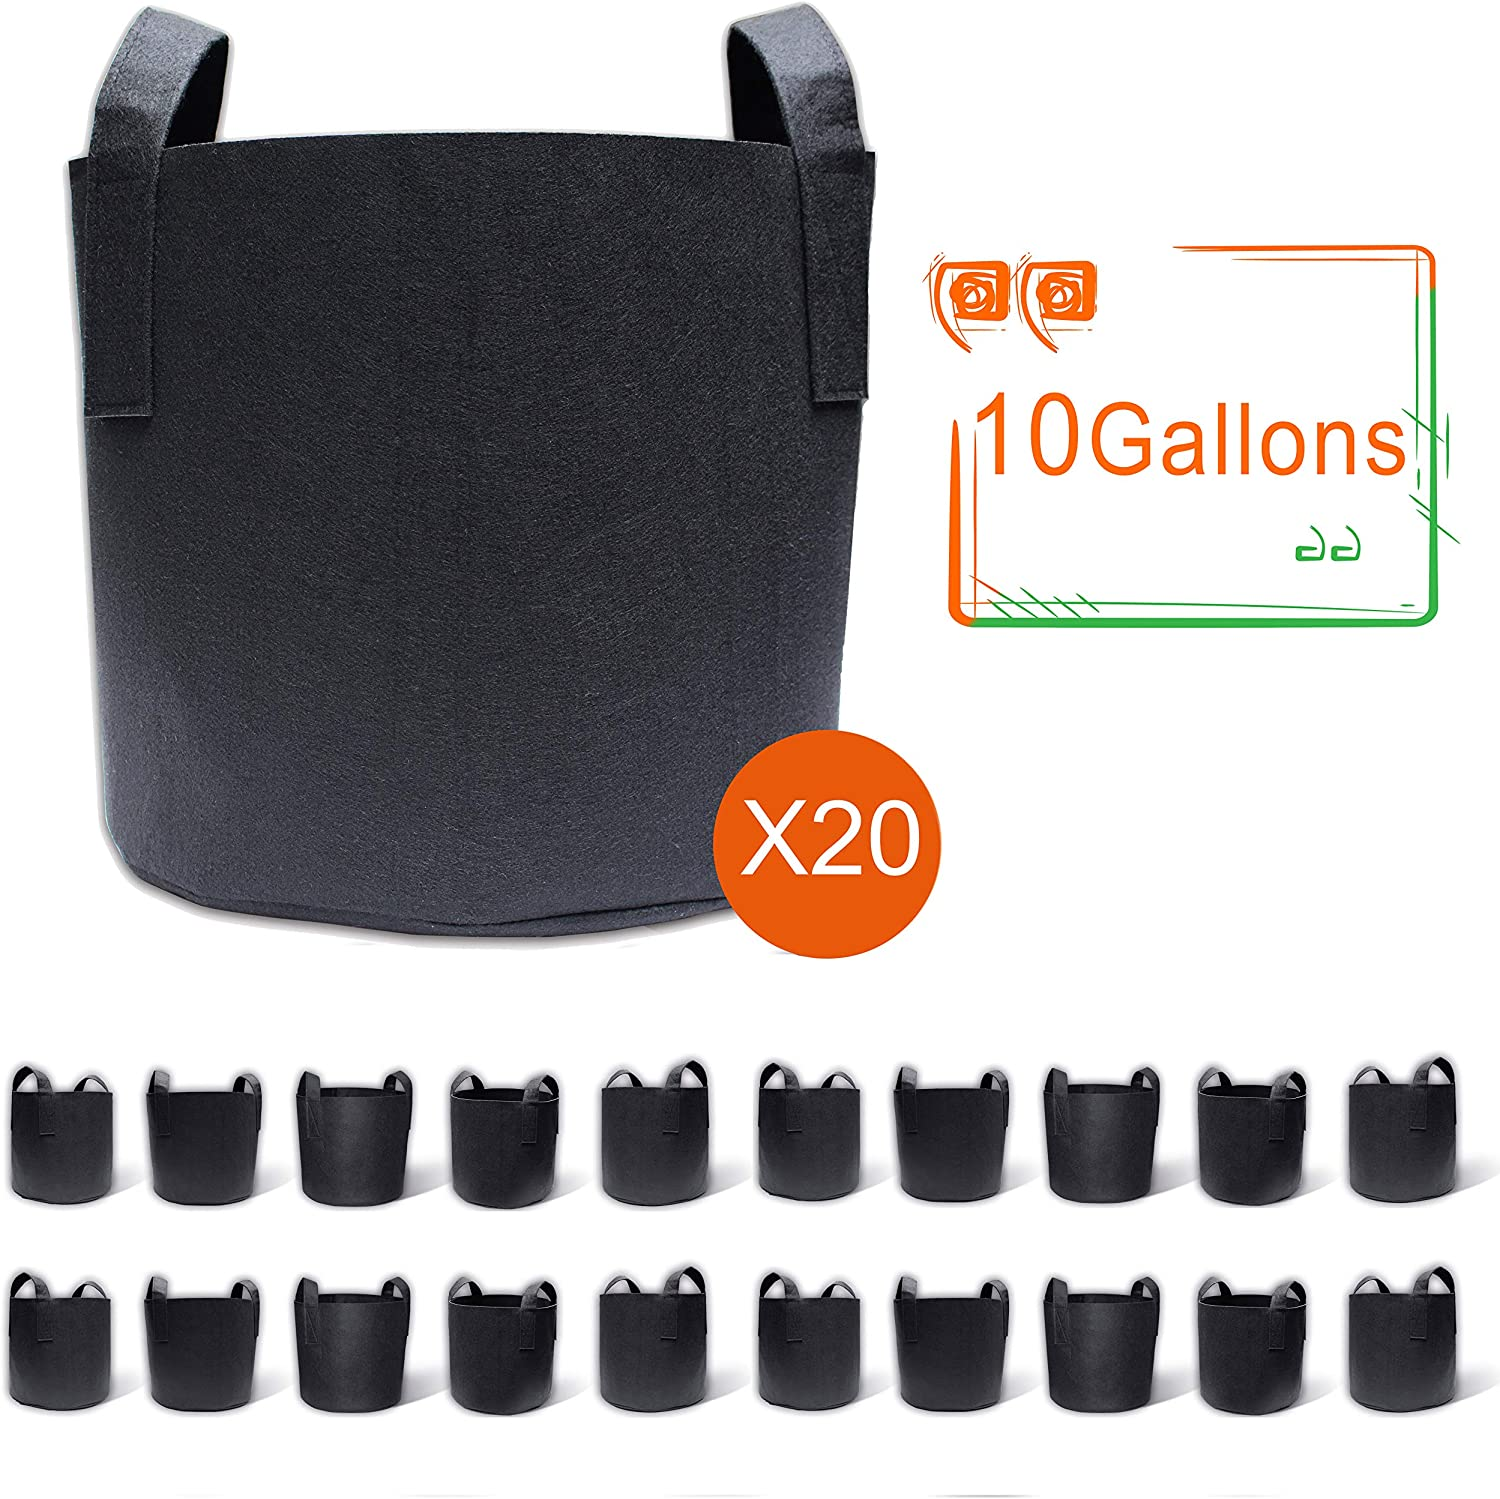 Gardzen 20-Pack 10 Gallon Grow Bags, Aeration Fabric Pots with Handles, Pot for Plants